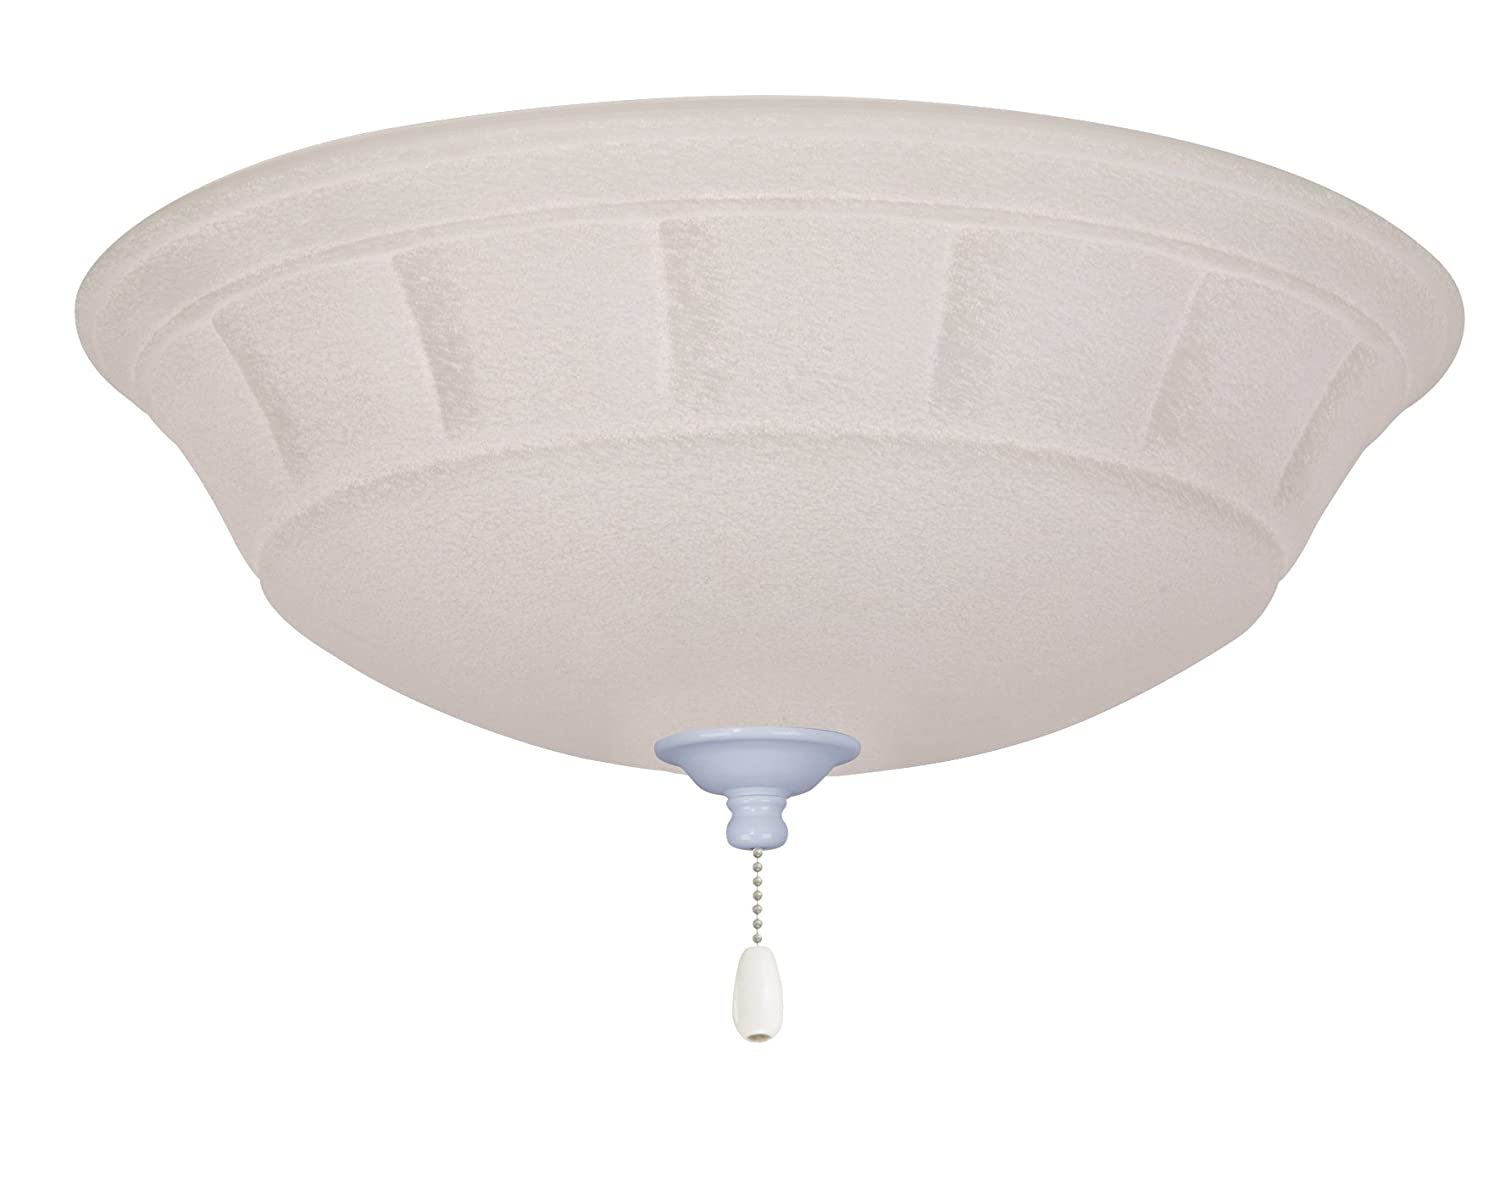 Emerson Ceiling Fans LK141LEDWW Grande White Mist LED Light Fixture for Ceiling Fans, LED Array, Appliance White by Emerson   B00TOX4VHC